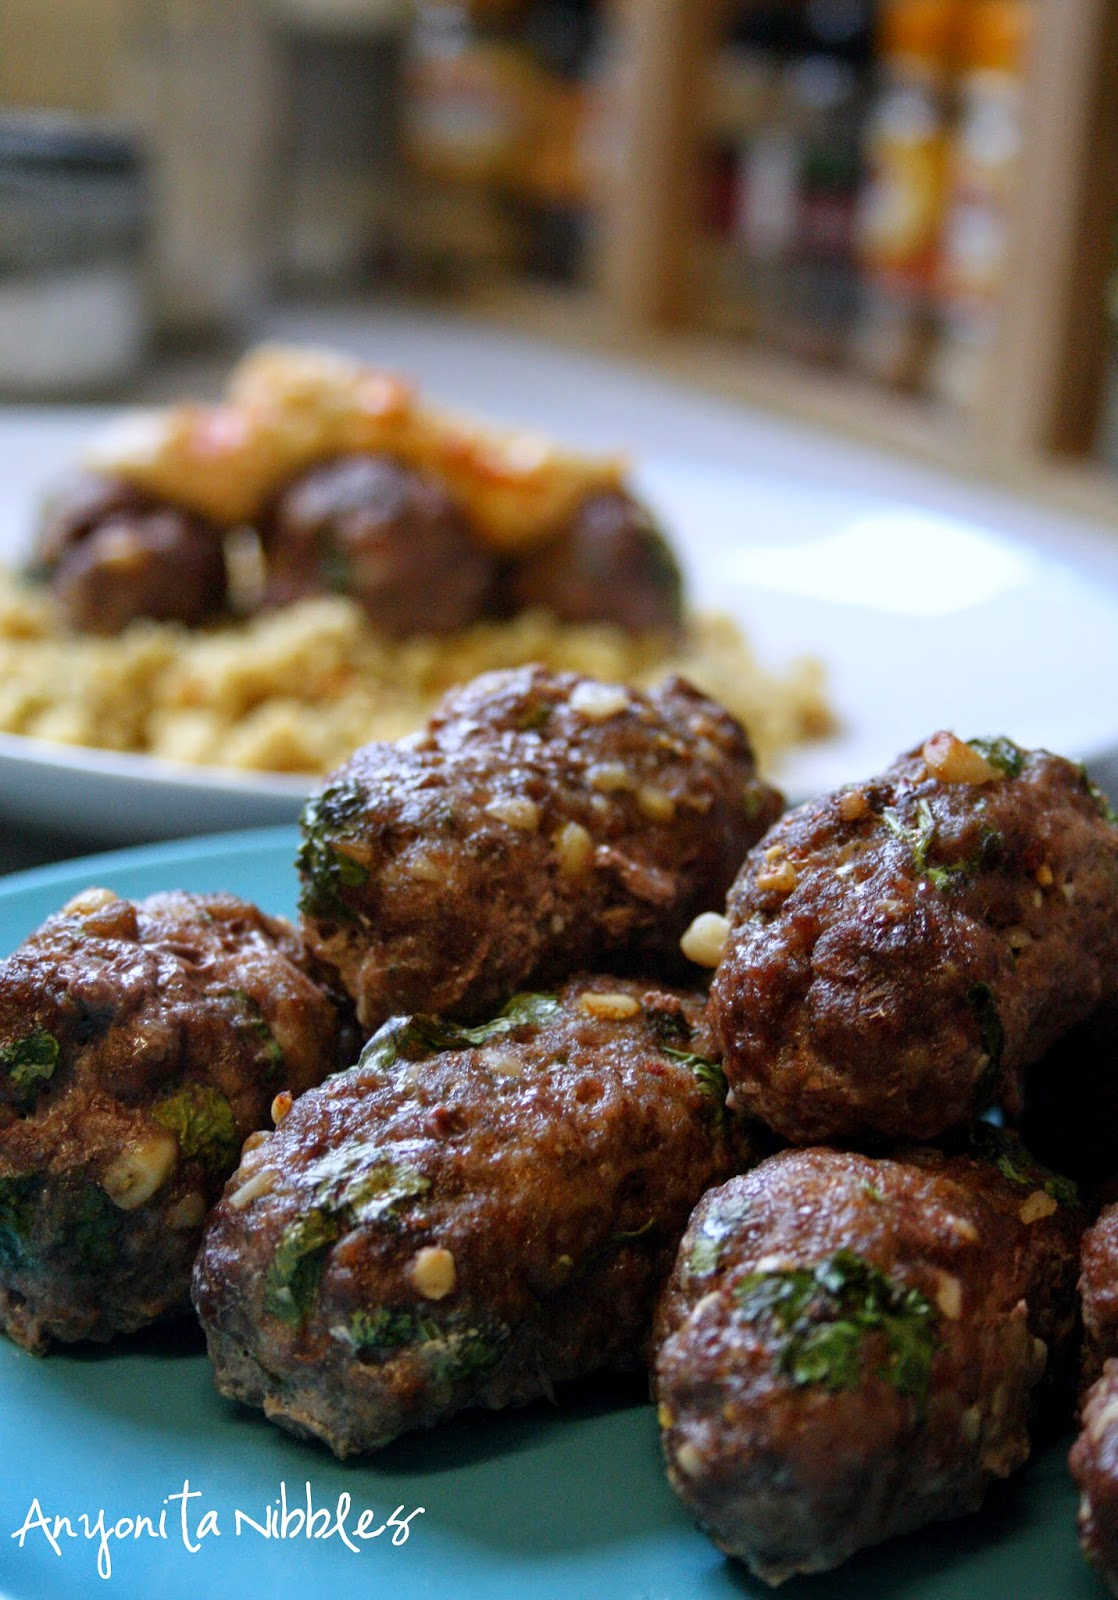 Pine nut and parsley studded lamb koftas by Anyonita Nibbles